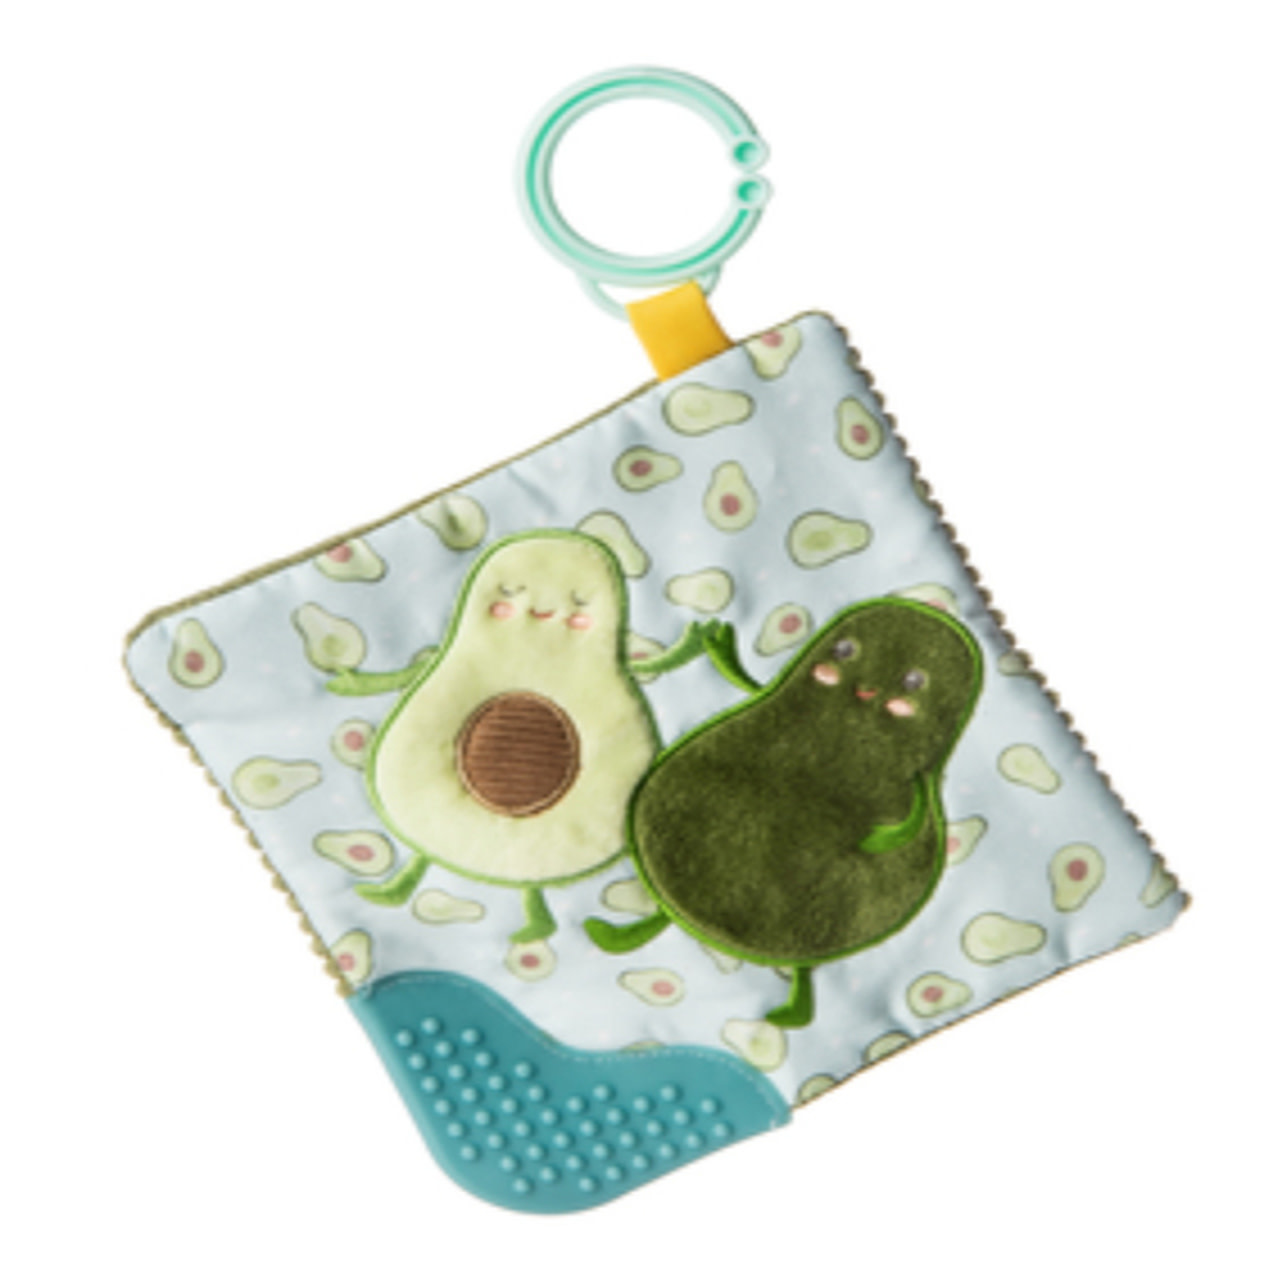 Mary Meyer Crinkle Teether, Yummy Avocado